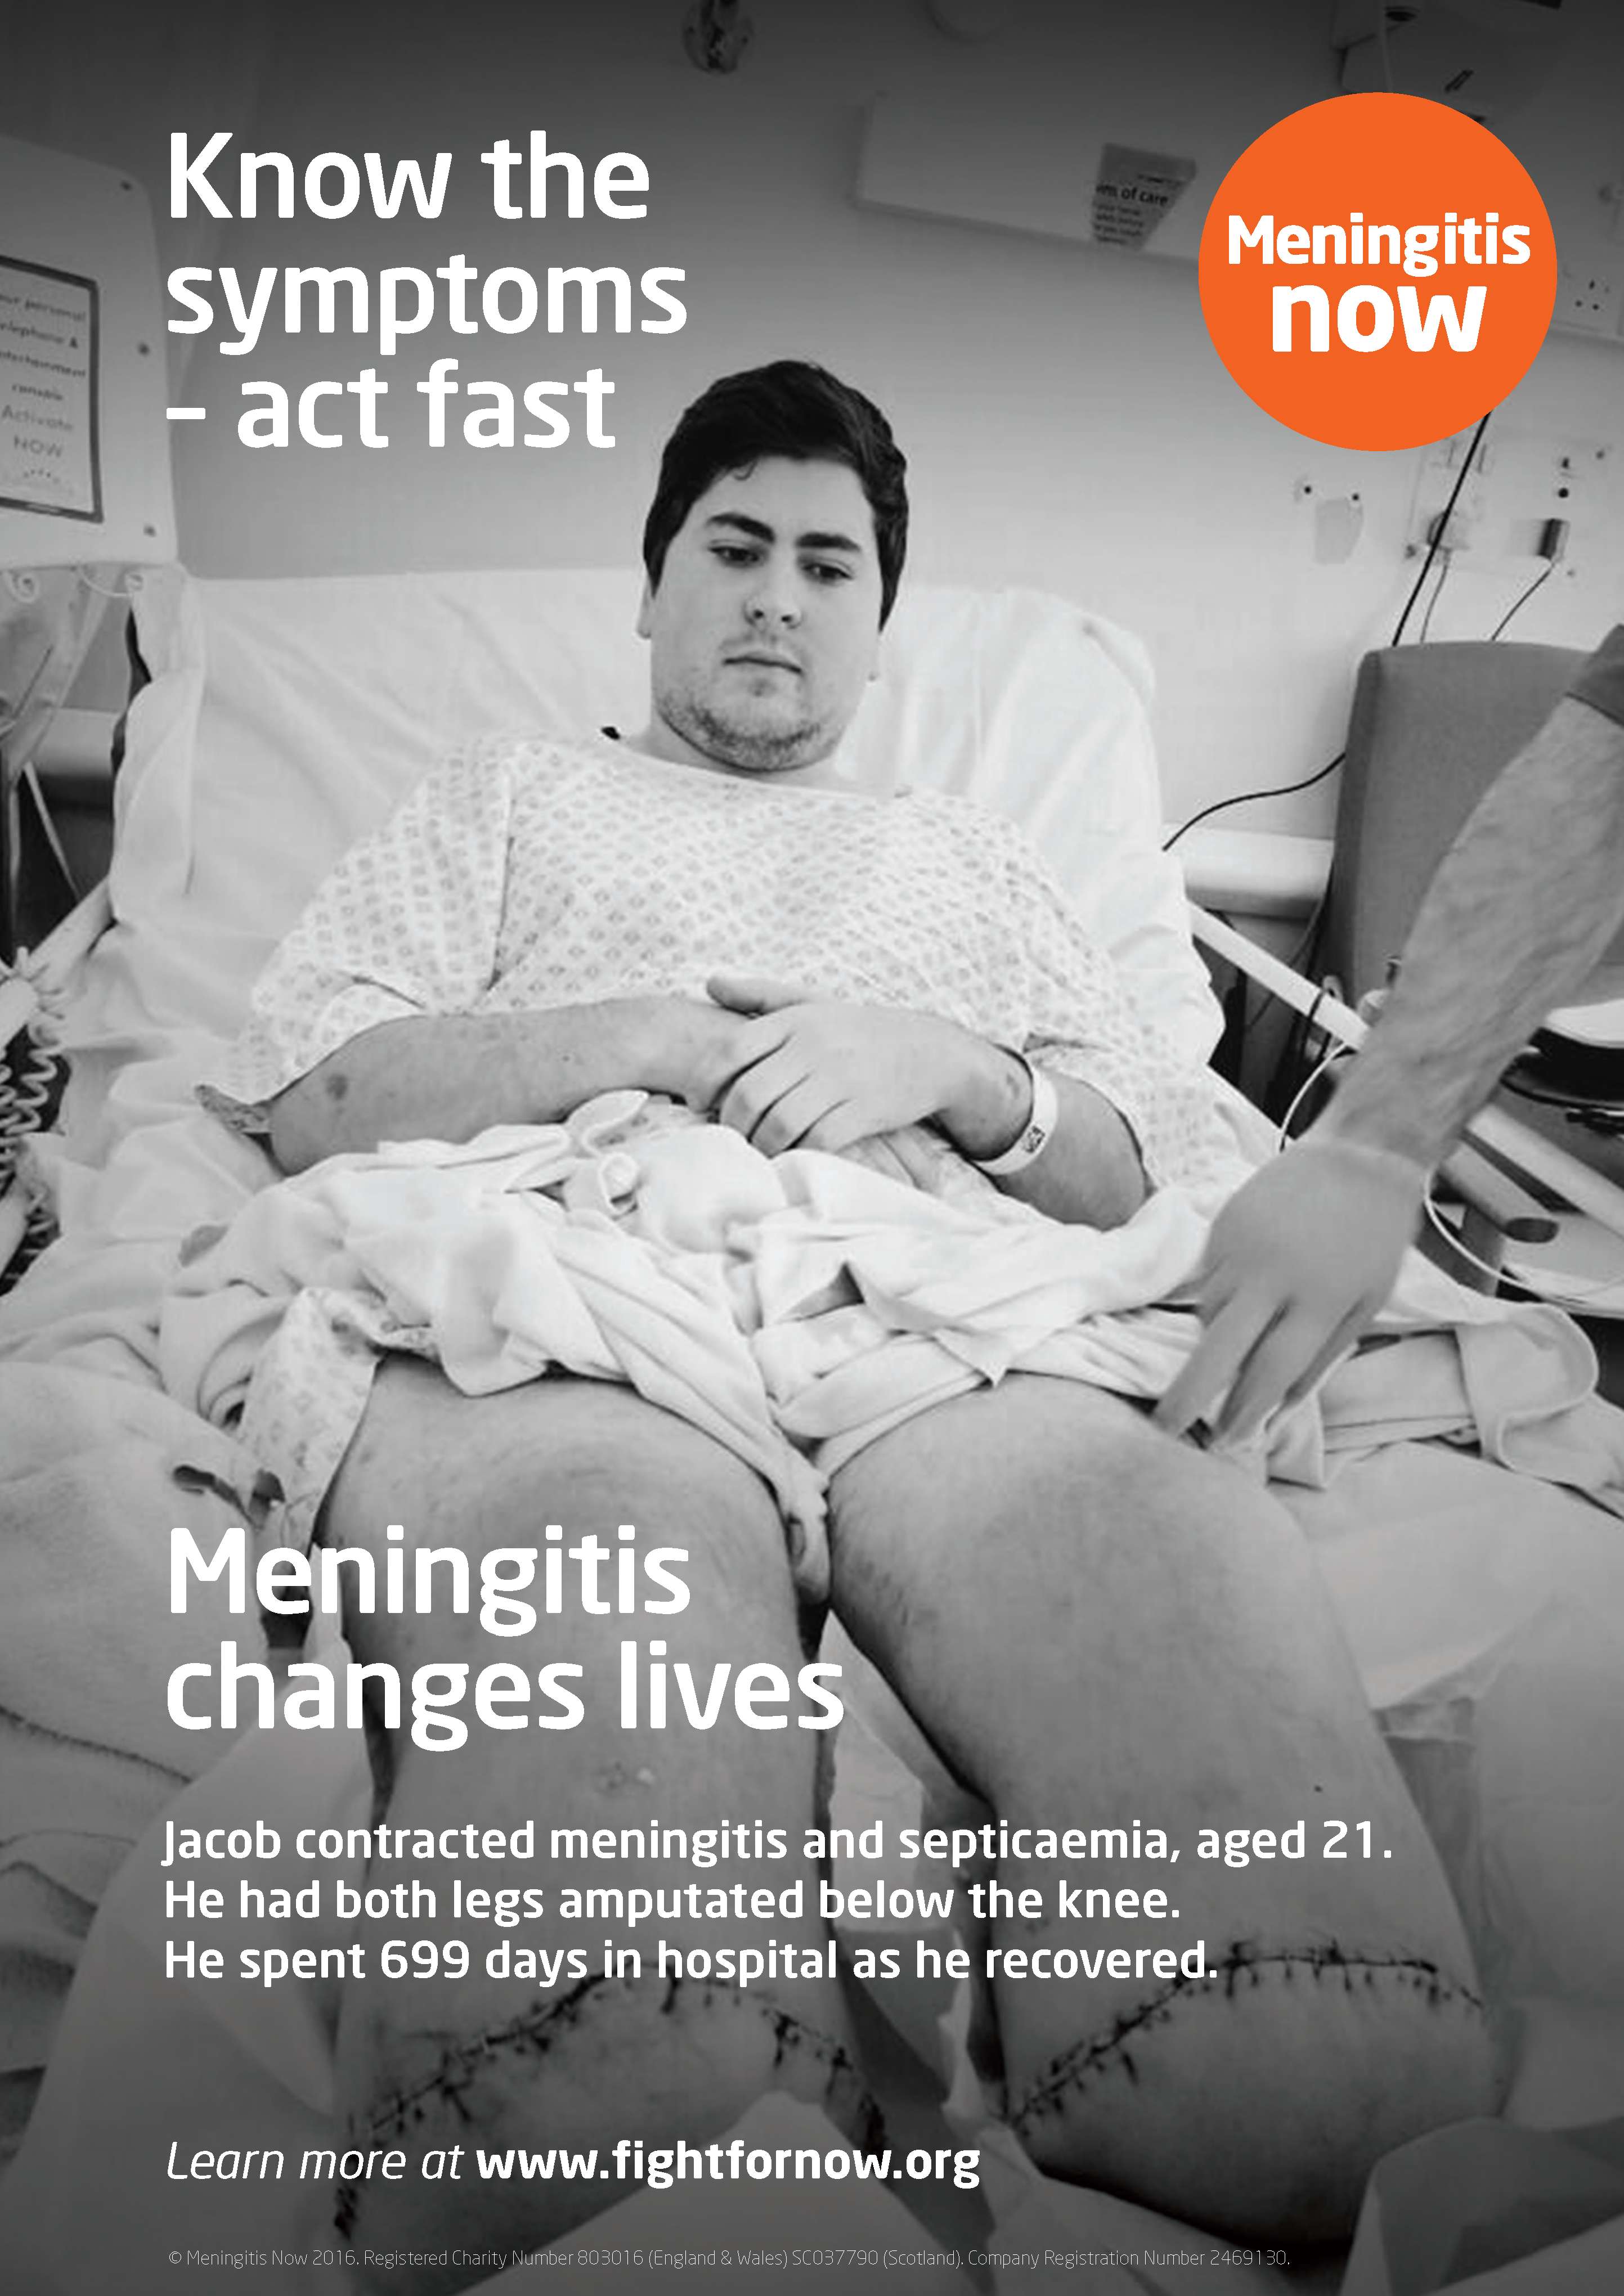 Meningitis_changes_lives_-_student_campaign_poster_2016